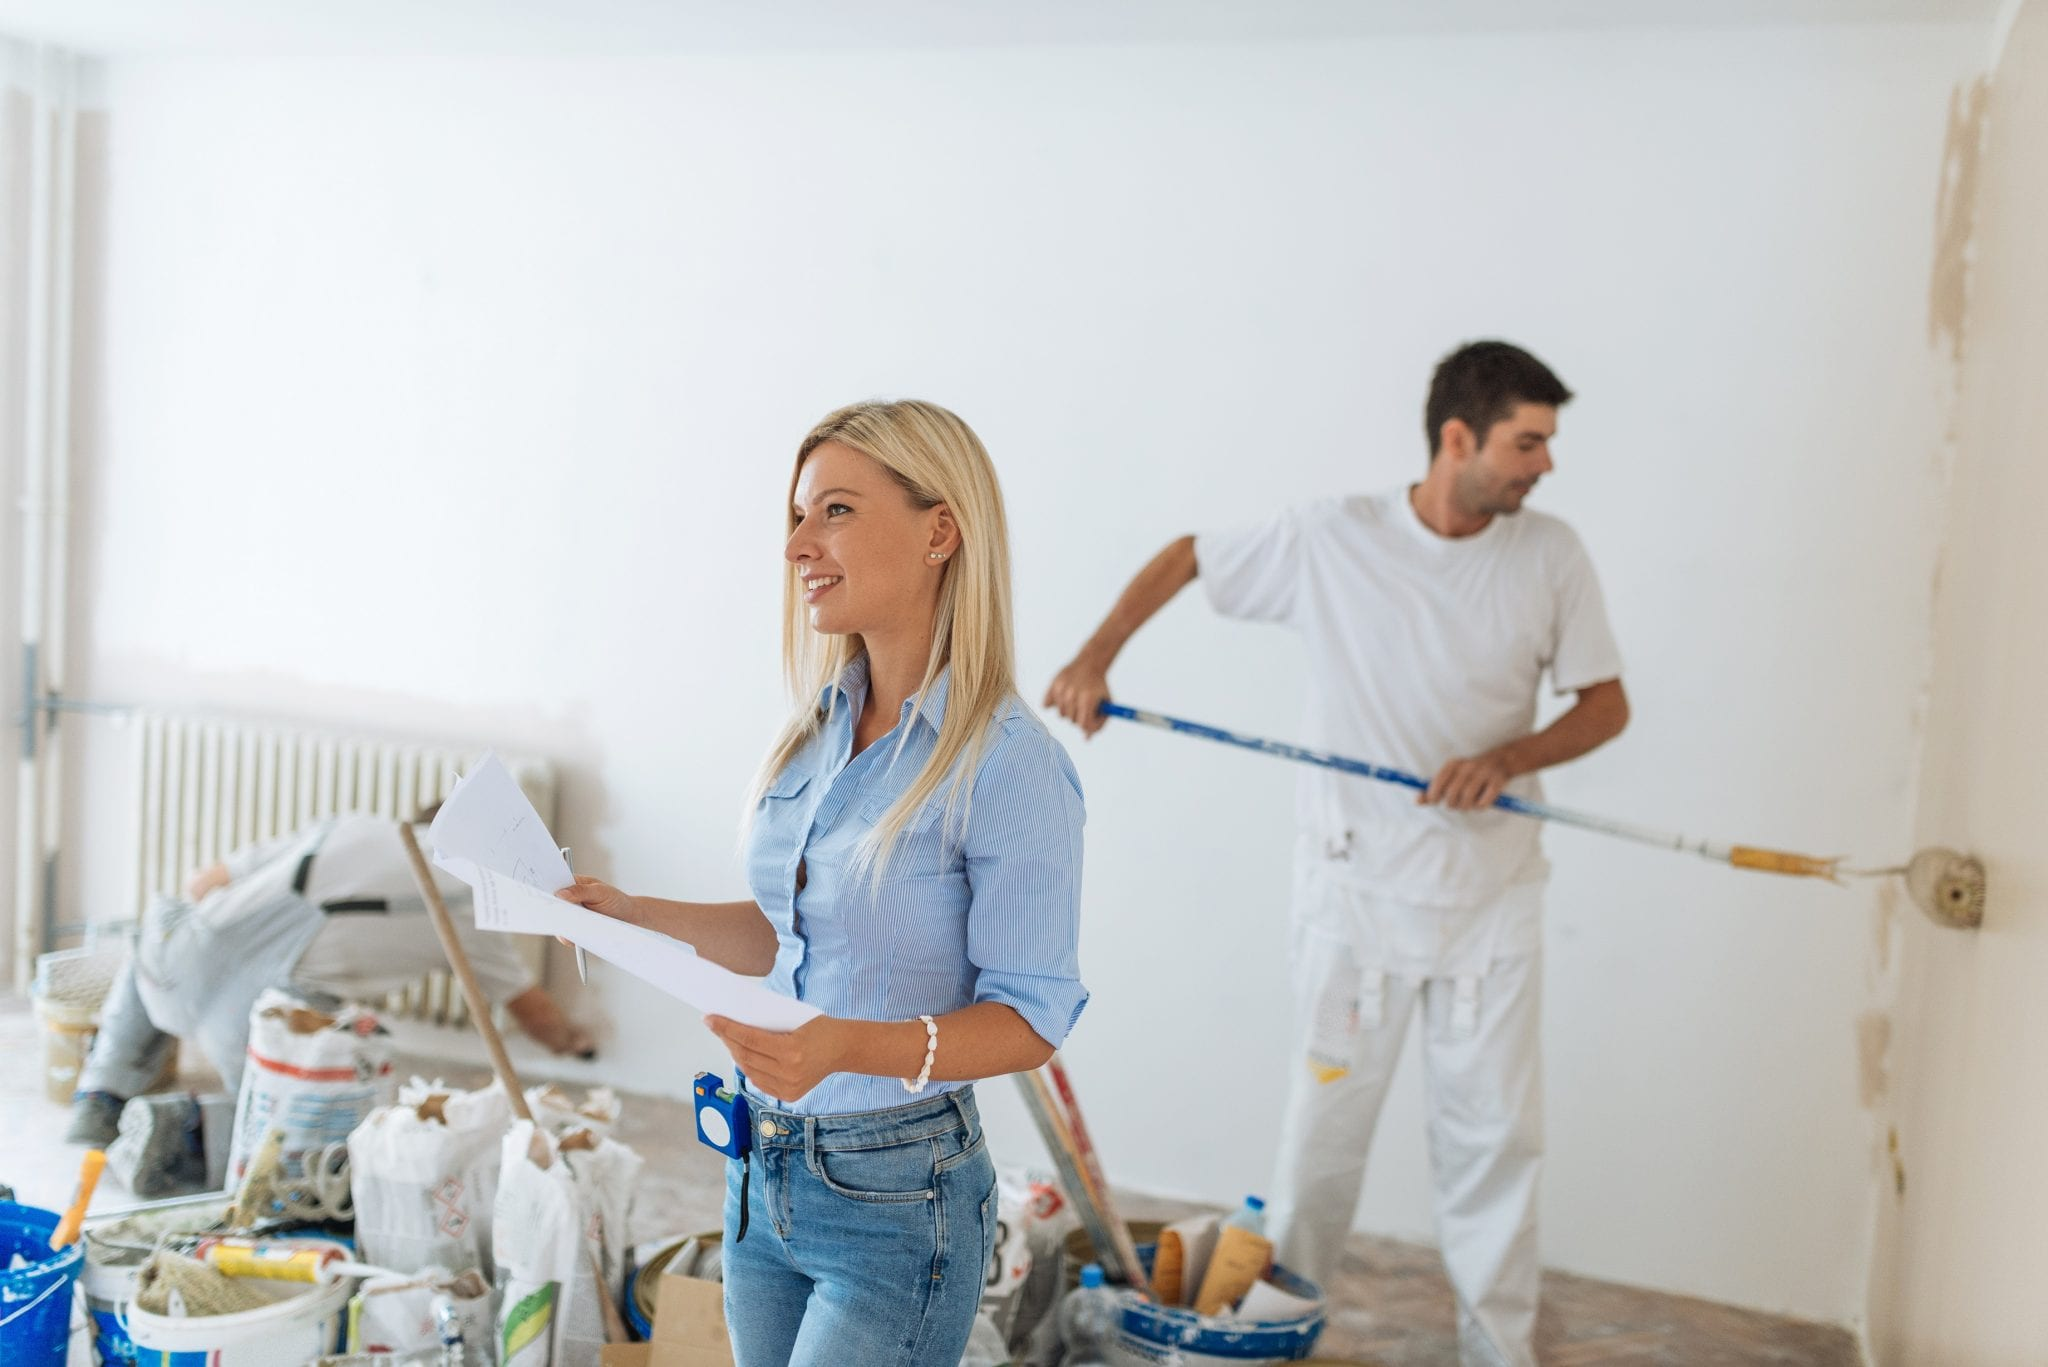 Get the best Painting services in Arlington Texas